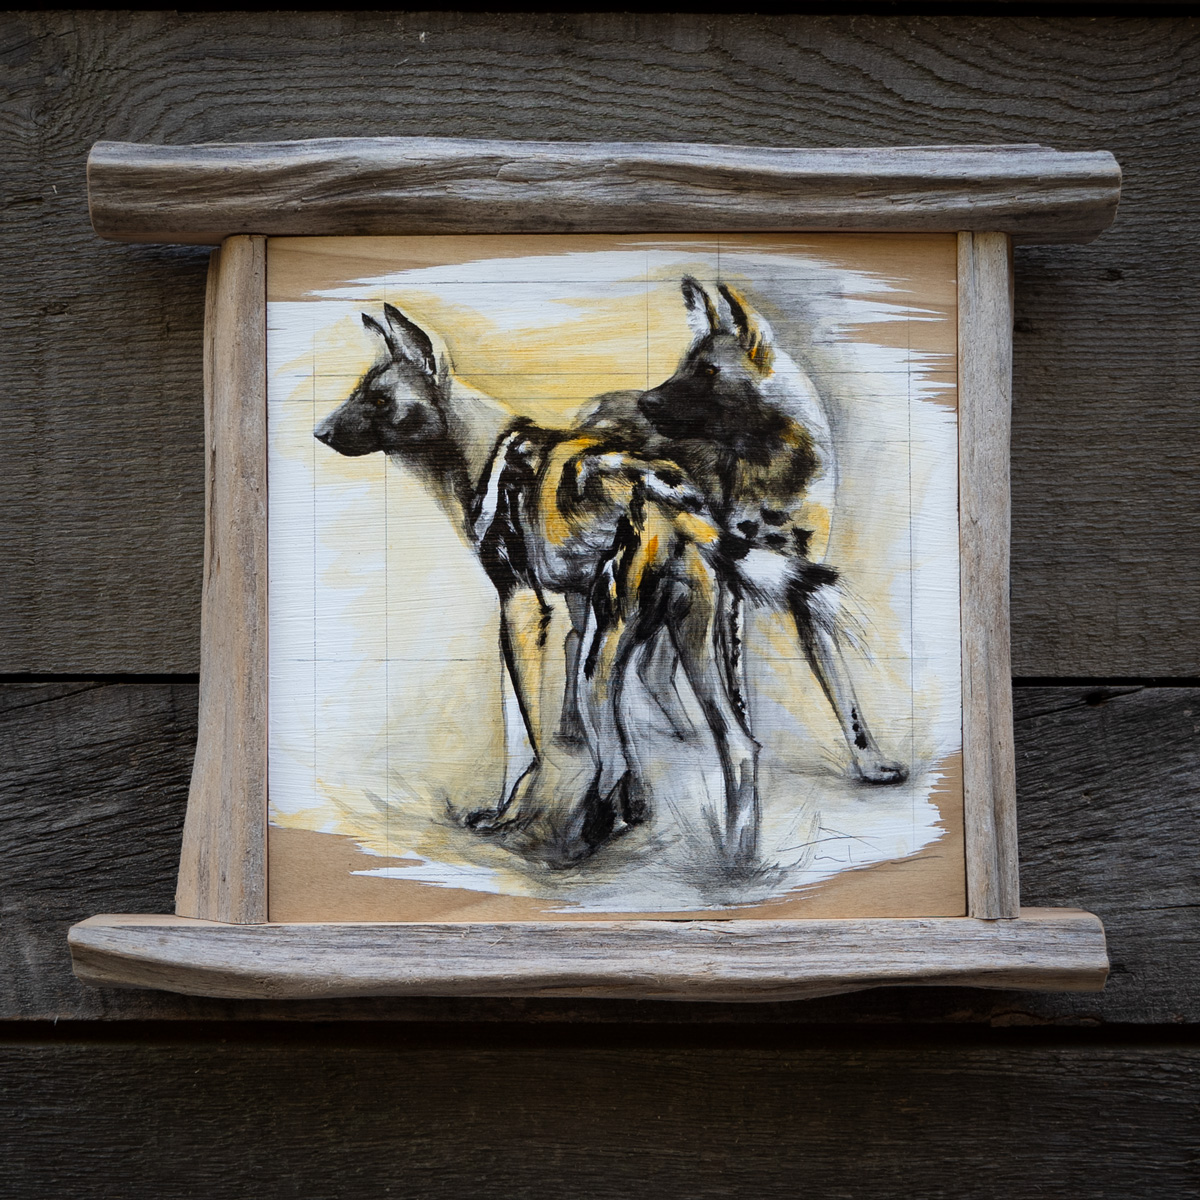 Painted Wolves Painted - Original oil painting by wildlife artist Timothy Tim Davison of the Davison Art Company featuring a pair of African painted wolves, also known as painted dogs or wild dogs, framed in a custom driftwood frame. © COPYRIGHT TIMOTHY DAVISON